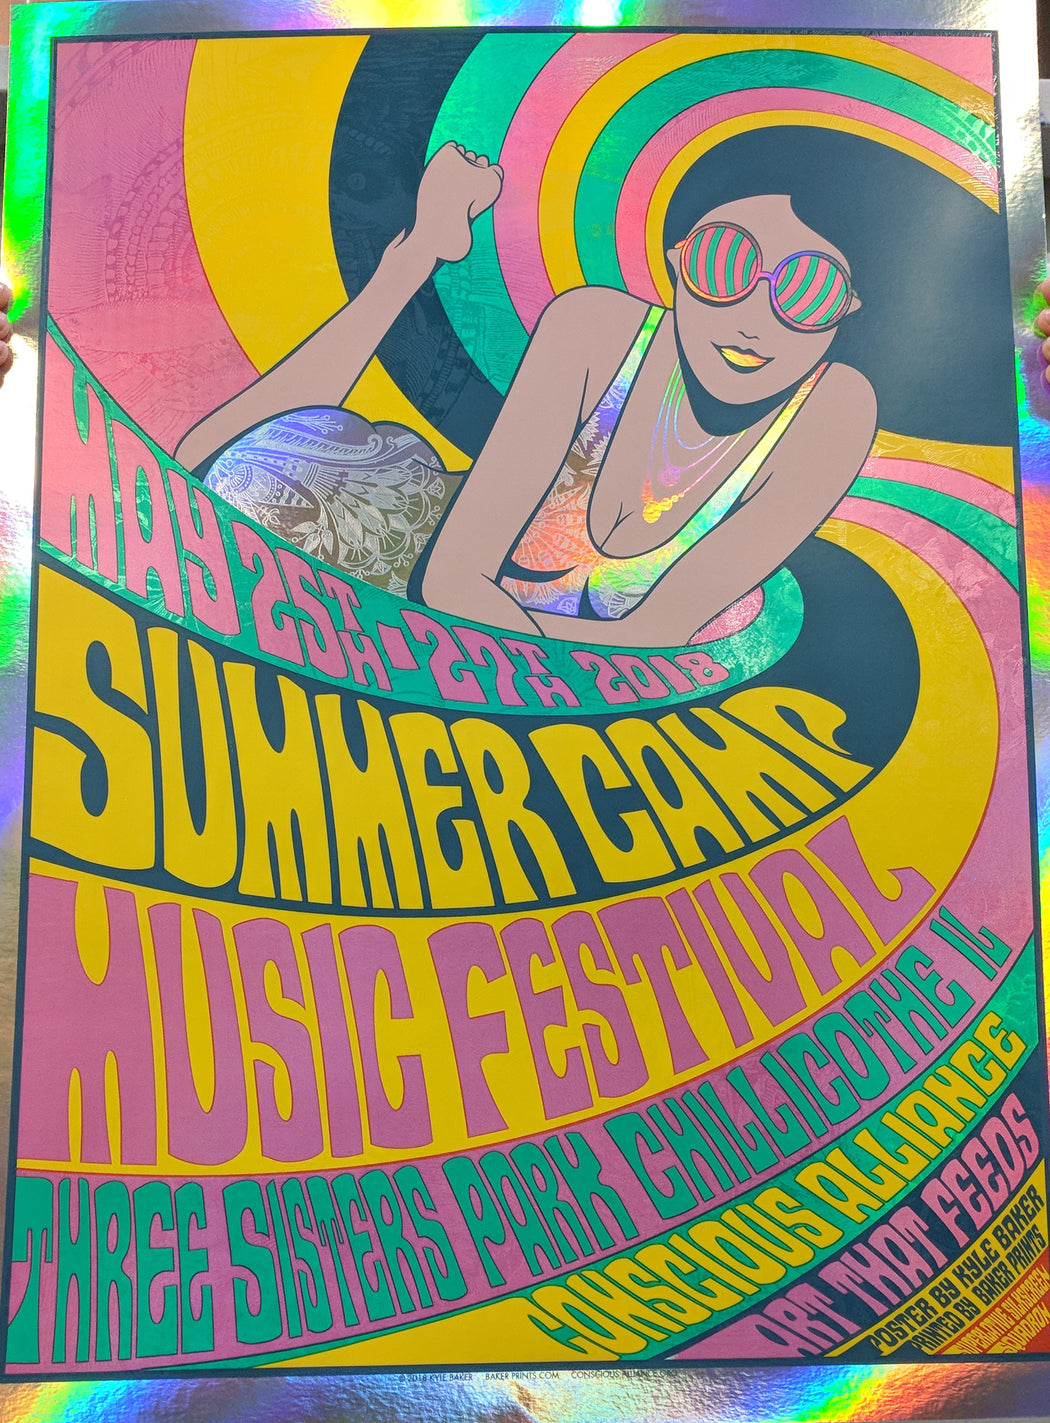 Summer Camp Music Festival - 2018 (FOIL VARIANT)